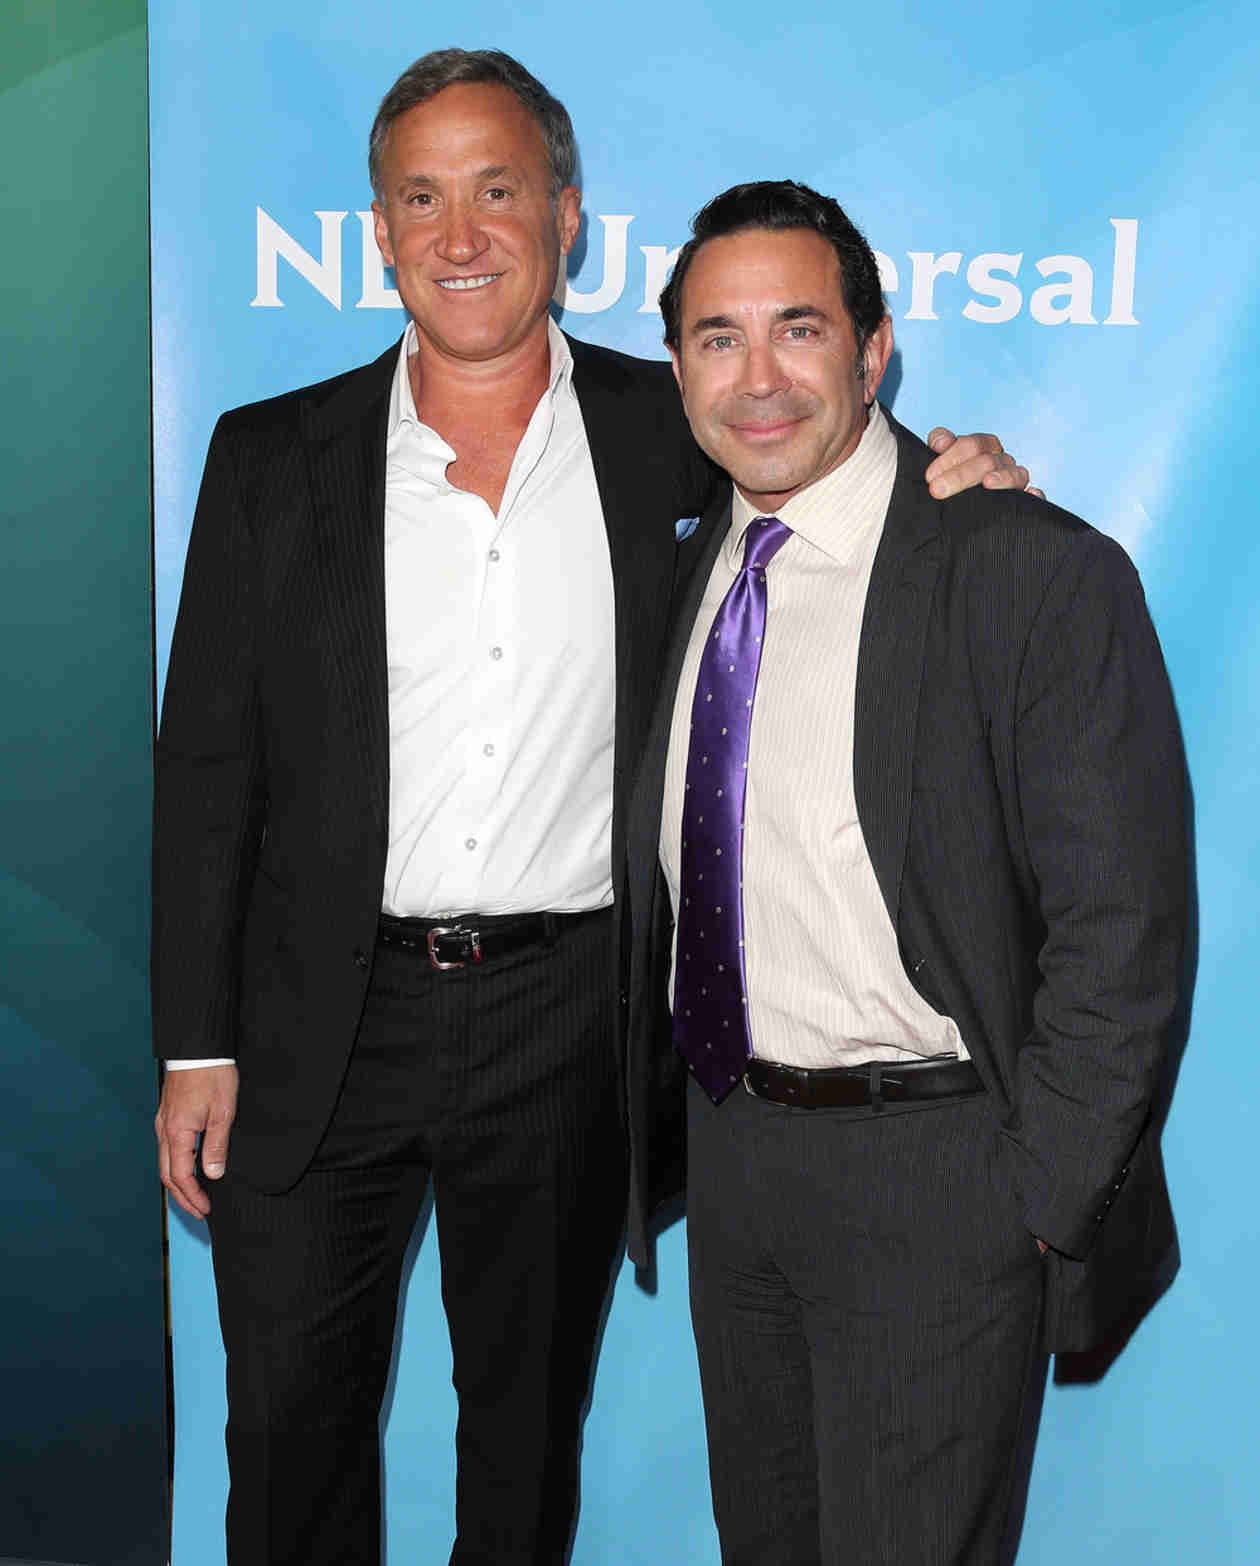 Terry Dubrow and Paul Nassif's New Show Botched — See the Trailer! (VIDEO)